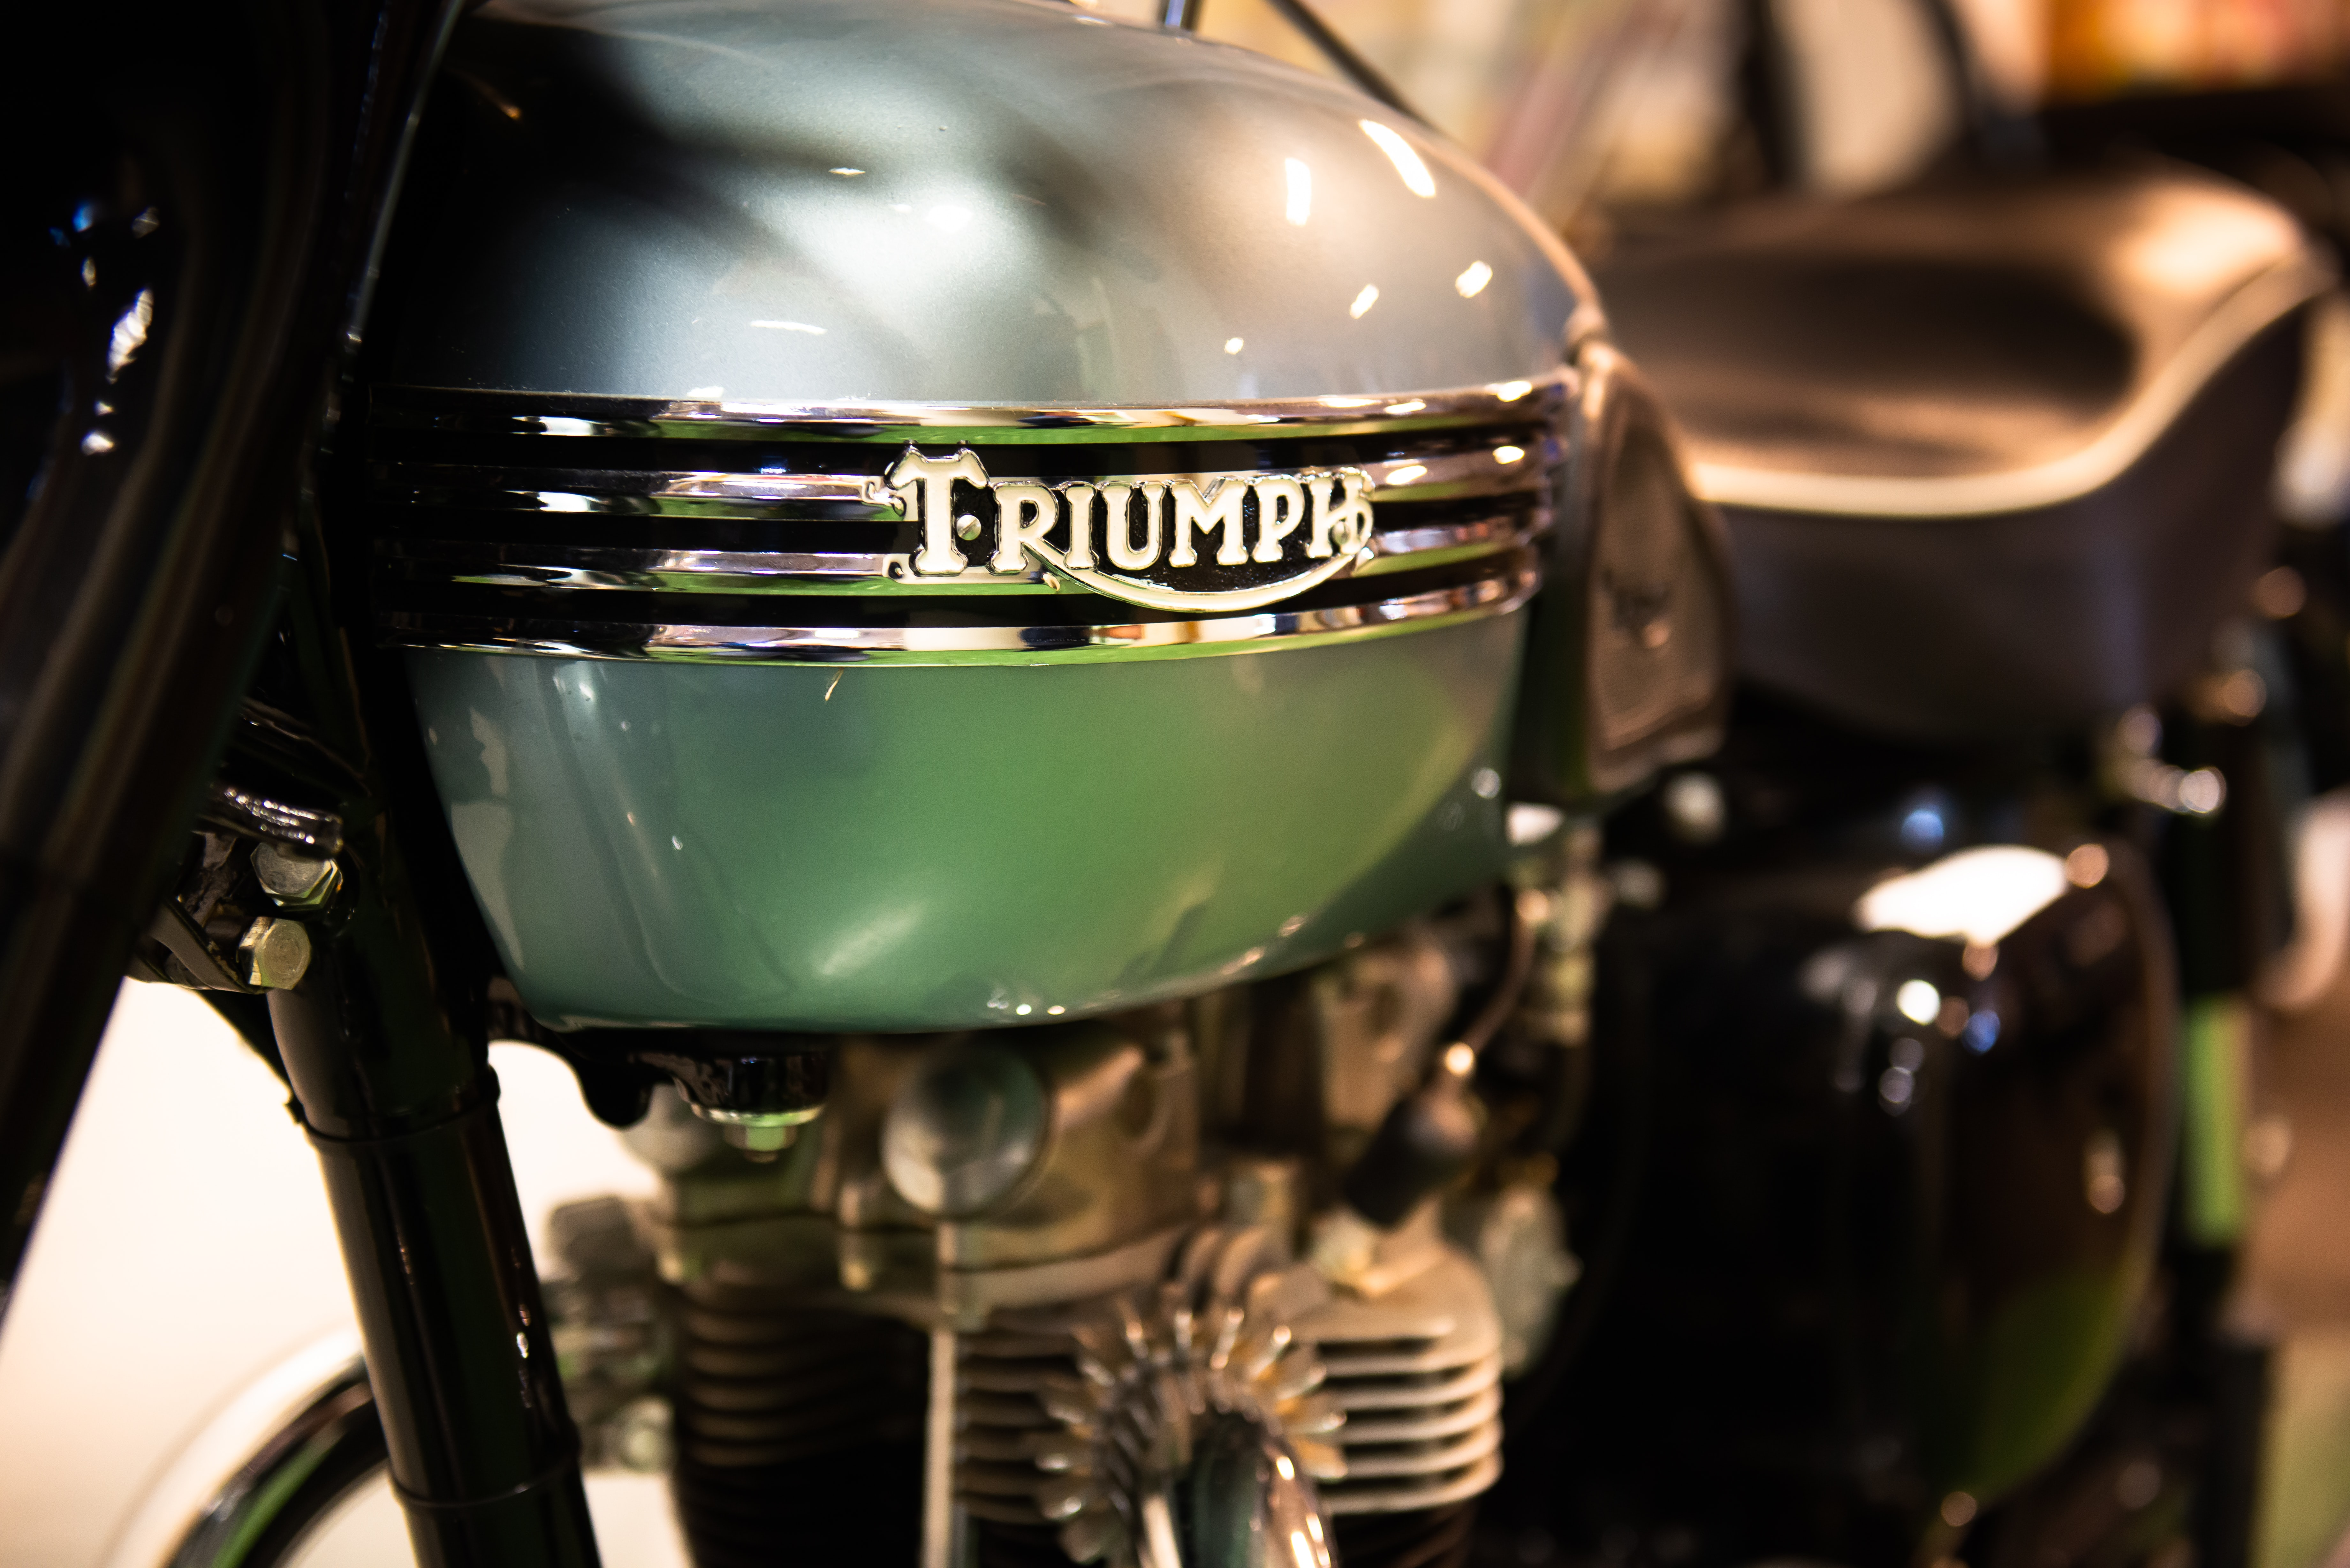 blue and black Triumph motorcycle